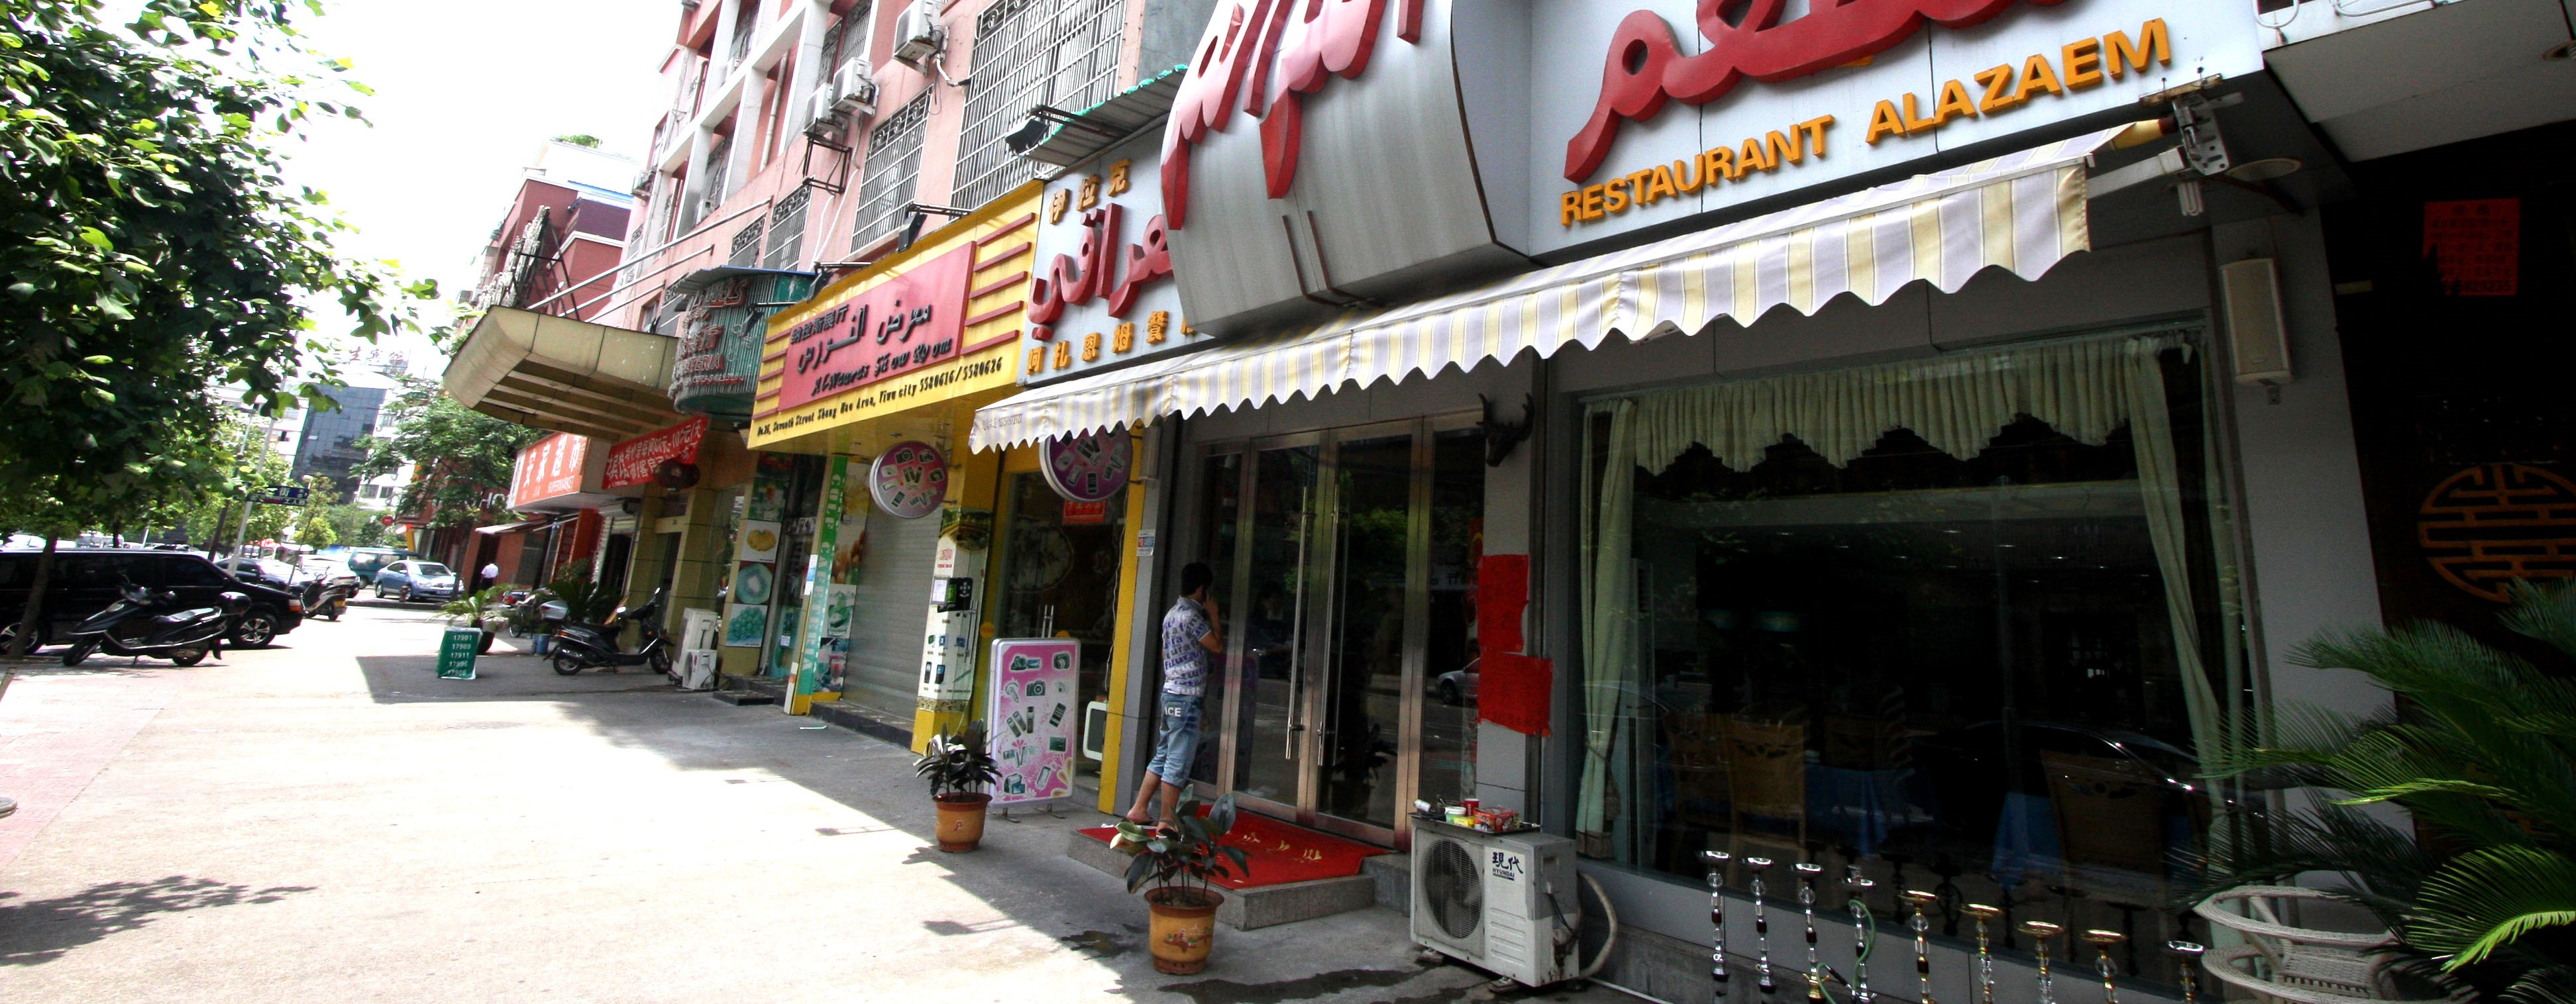 Iraqi restaurant in Yiwu, Zhejiang. (Photo: Flickr/Santo Chino)